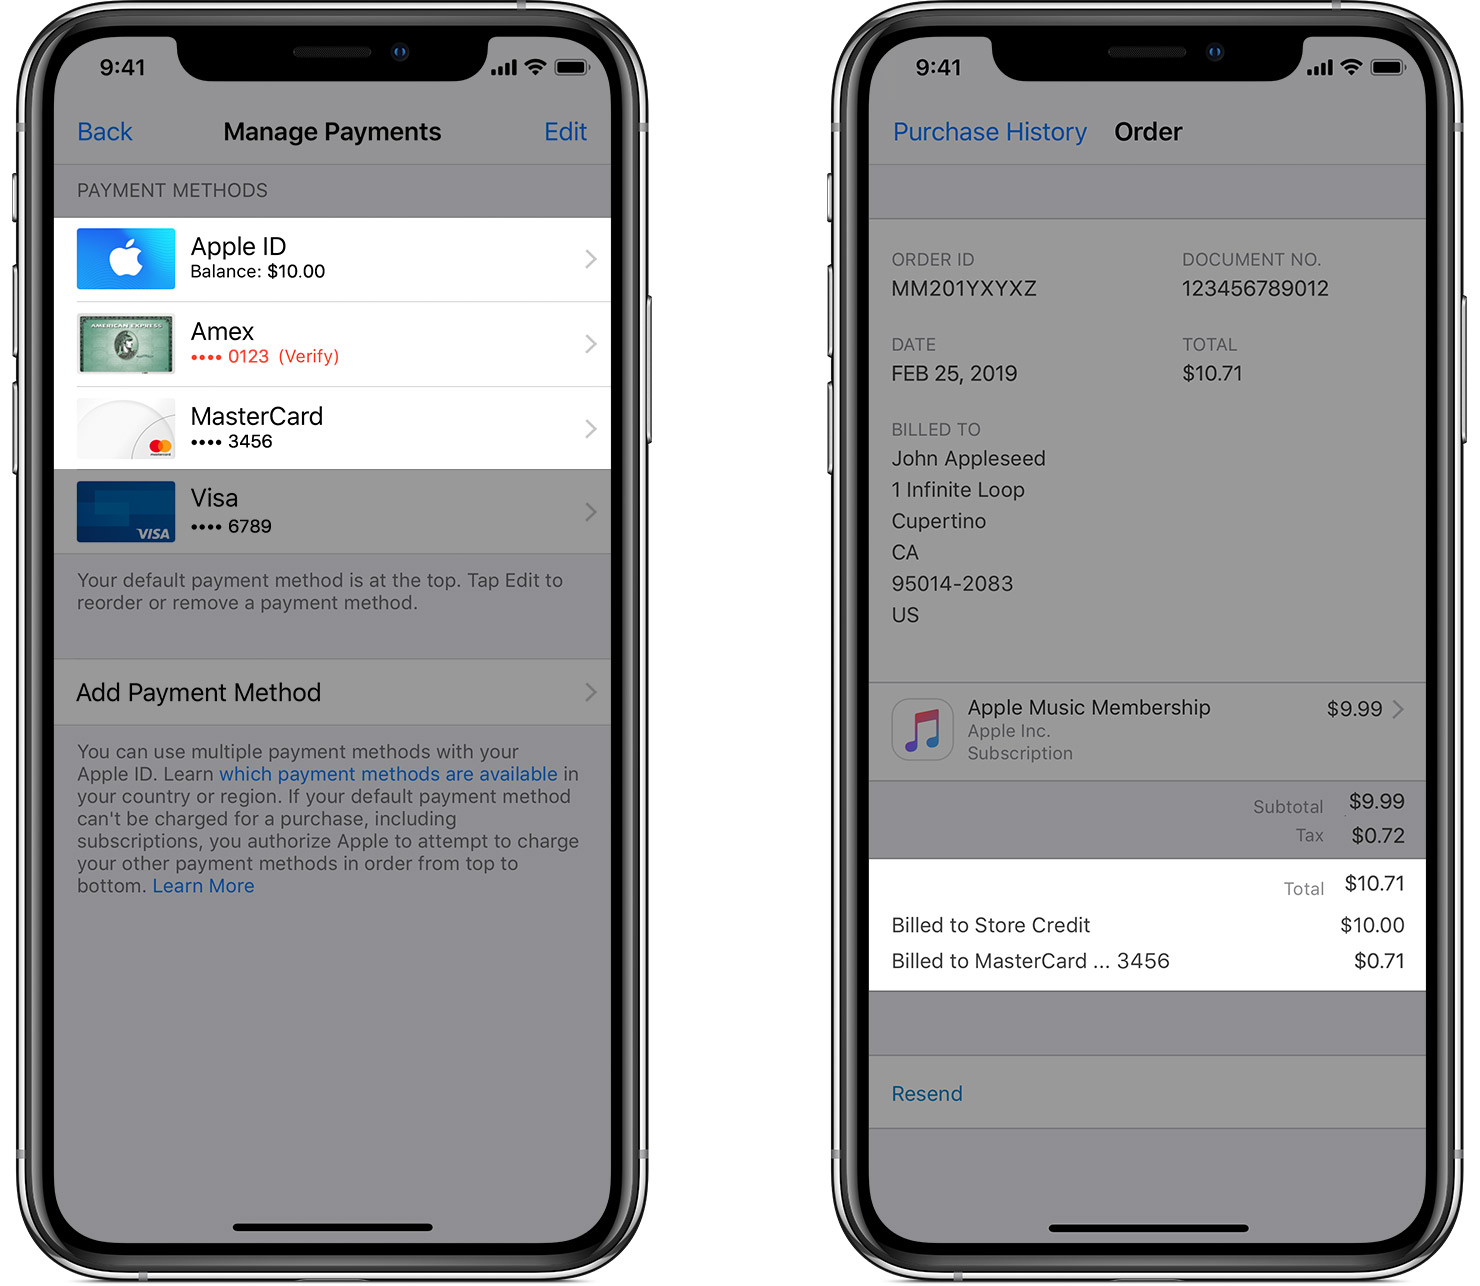 An iPhone showing multiple payment methods, one of which has an error, and an iPhone showing Purchase History with a purchase that was billed to both Apple ID balance and one of the payment methods on file. The primary payment method could not be billed, so the remainder after the Apple ID balance was charged was billed to the second payment method in the list.